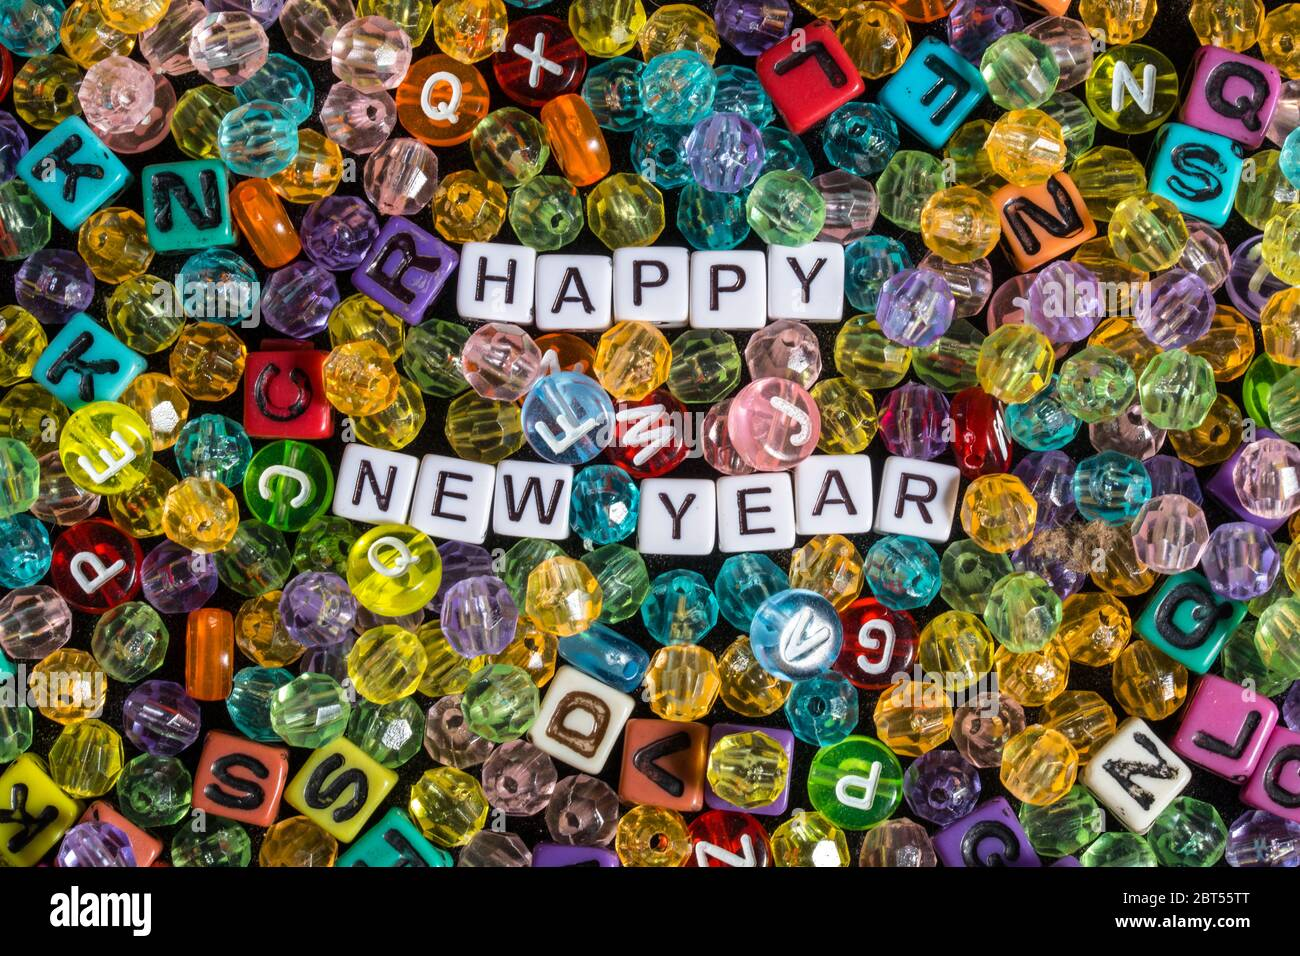 Happy New Year phrase surrounded by beads and alphabet blocks Stock Photo